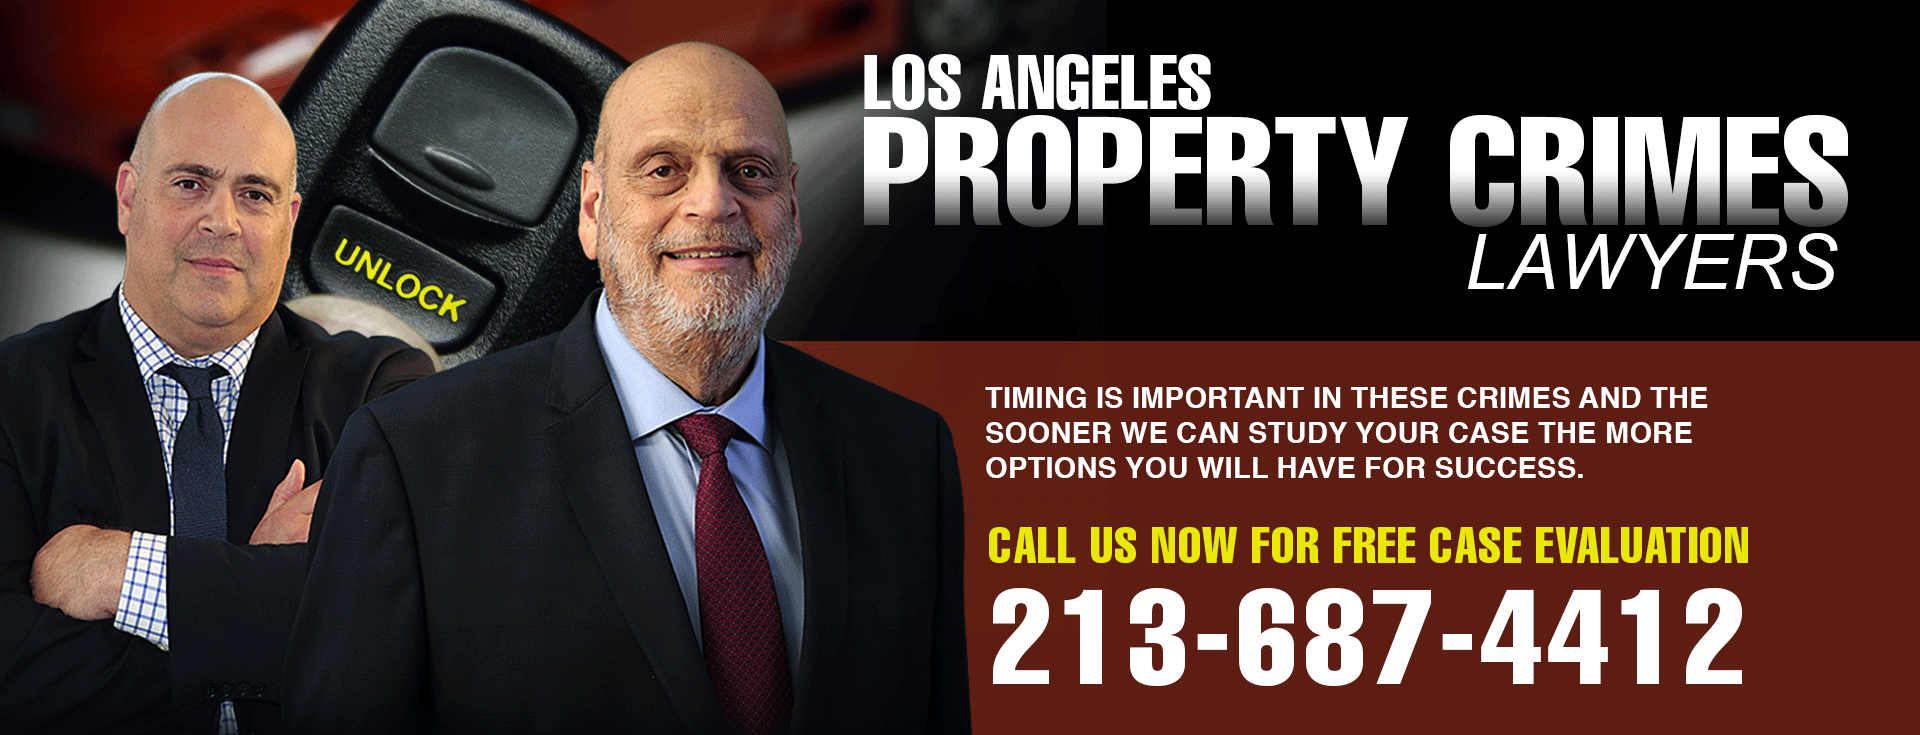 Los Angeles Property Crimes Lawyers